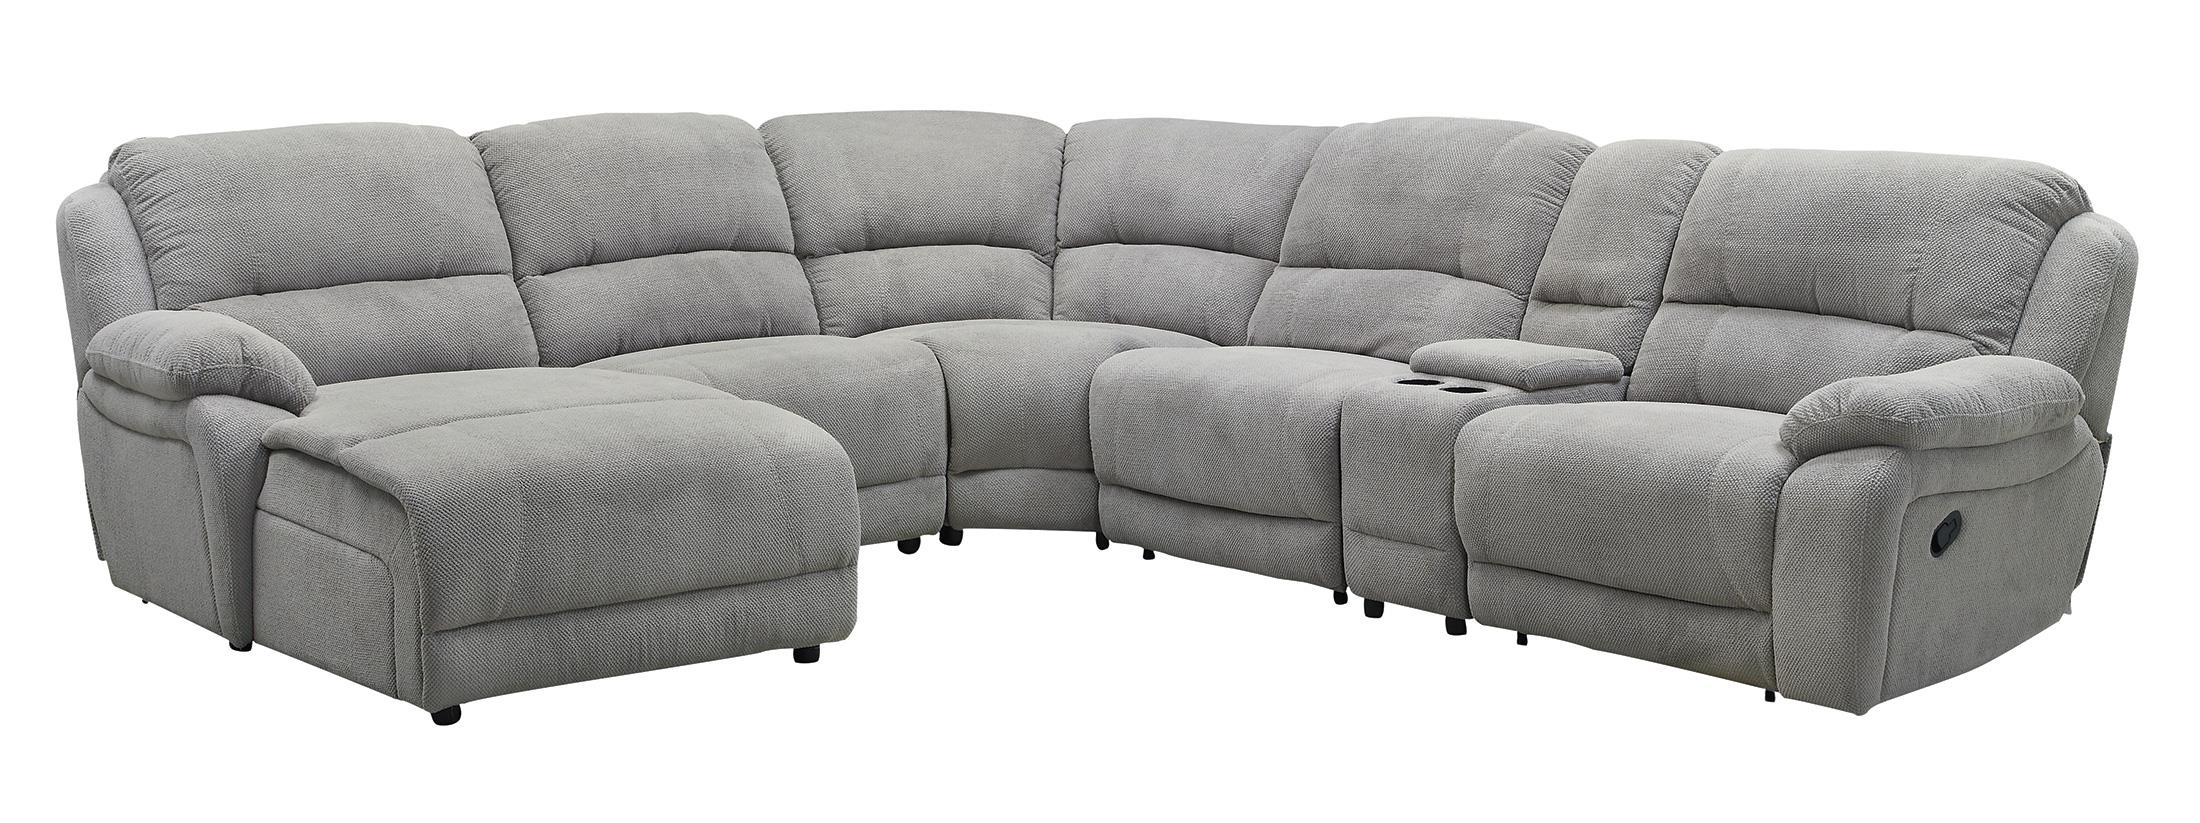 Coaster Mackenzie Silver 6-Piece Sectional - Item Number: 600017